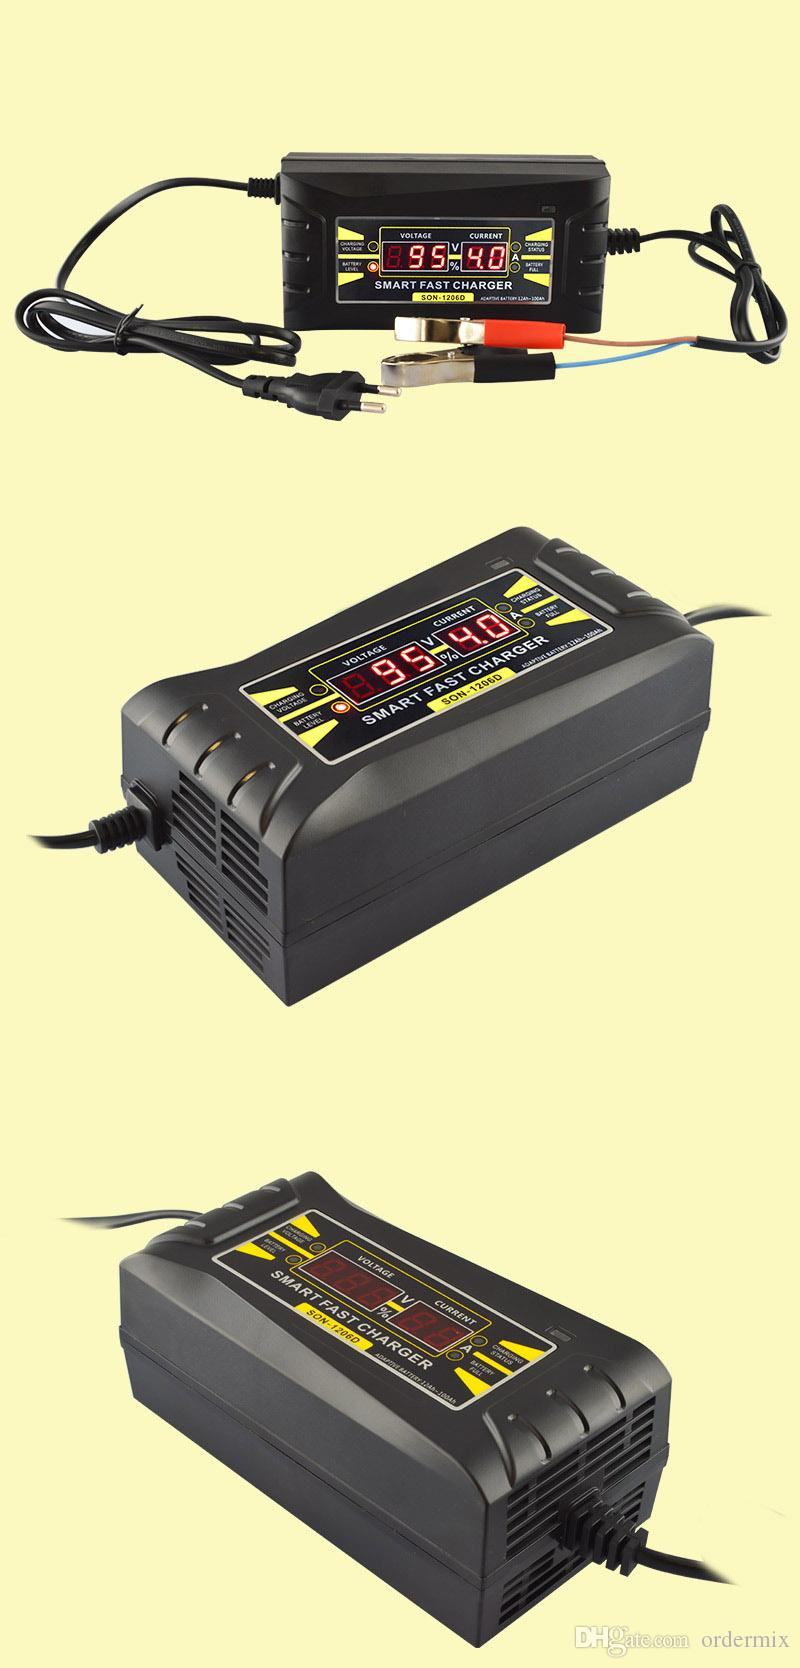 Automatic Smart Battery Charger 12V 5A EU/US Maintainer Desulfator for Lead Acid Batteries Car Battery Charger 110-240V AC input